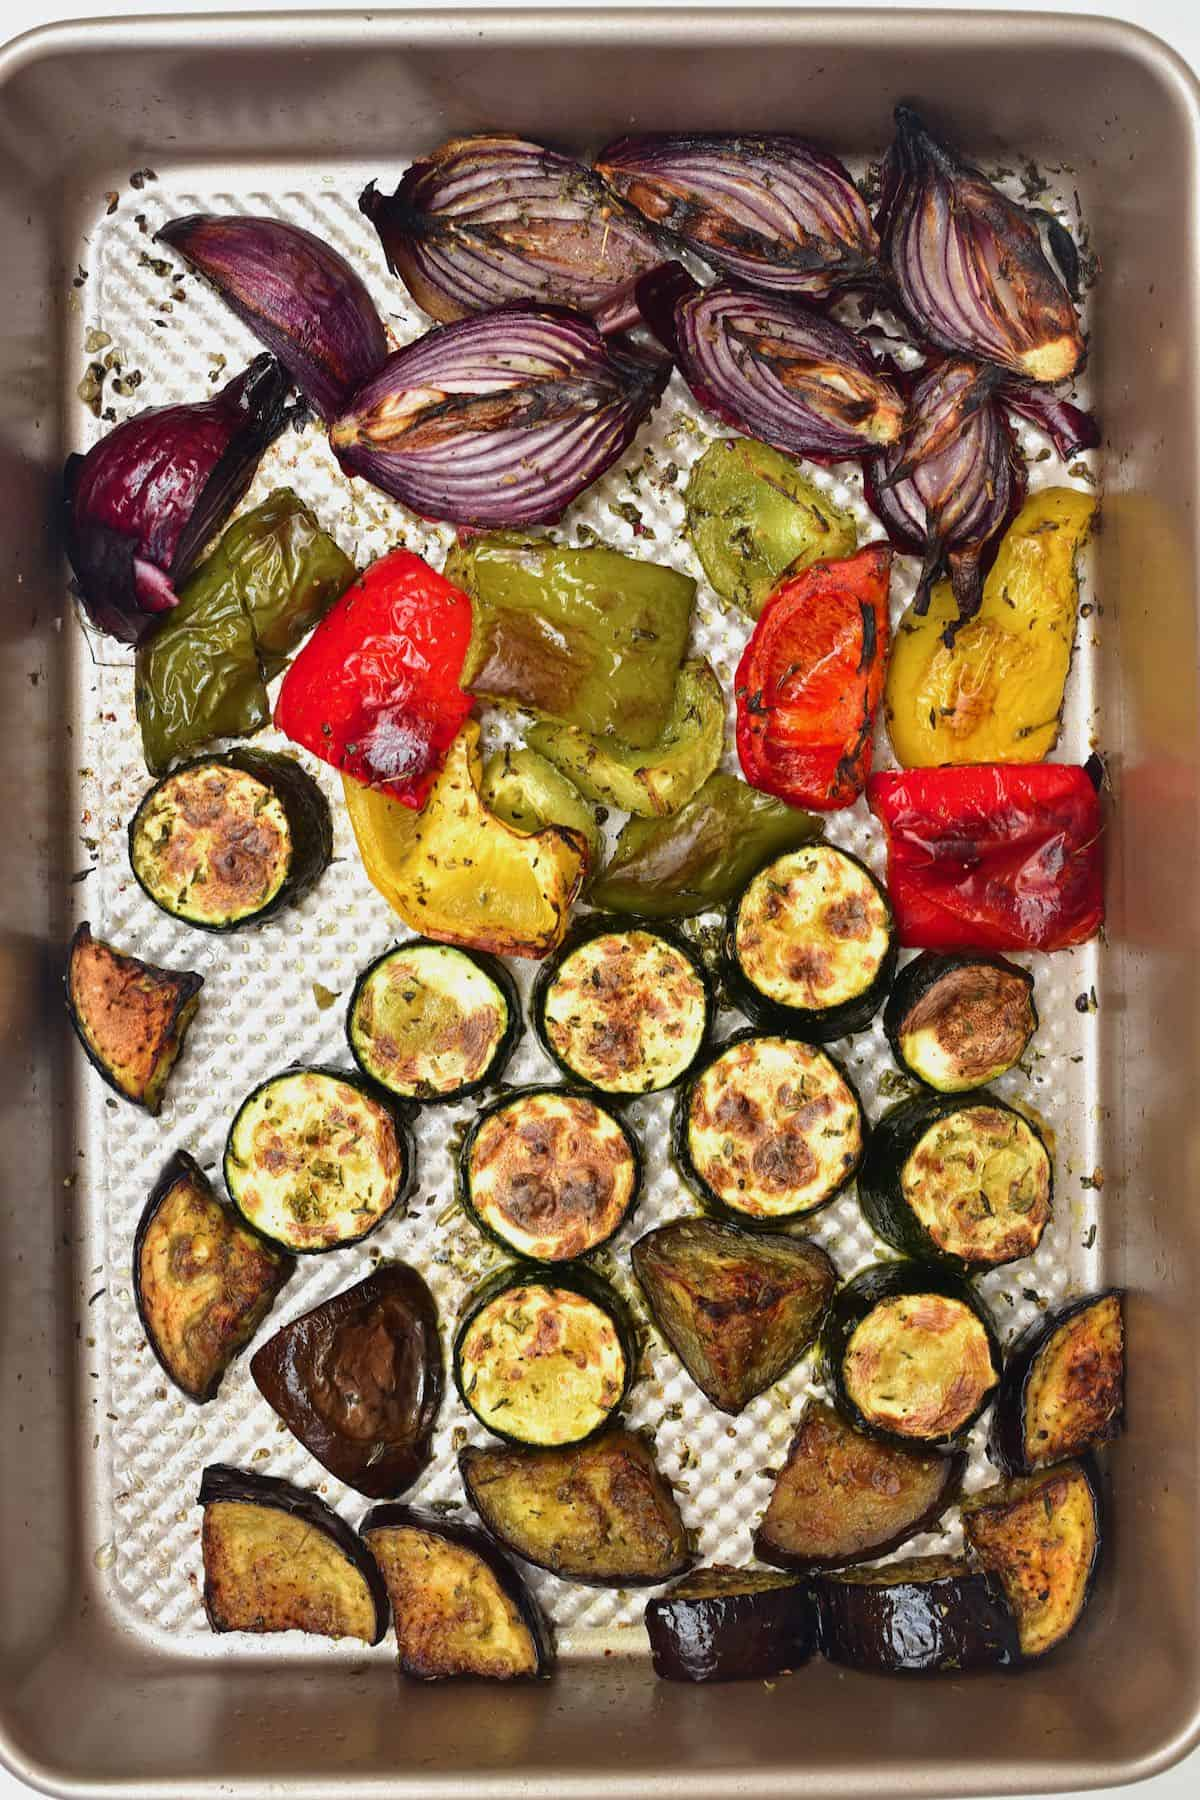 Roasted Mediterranean vegetables in a baking tray